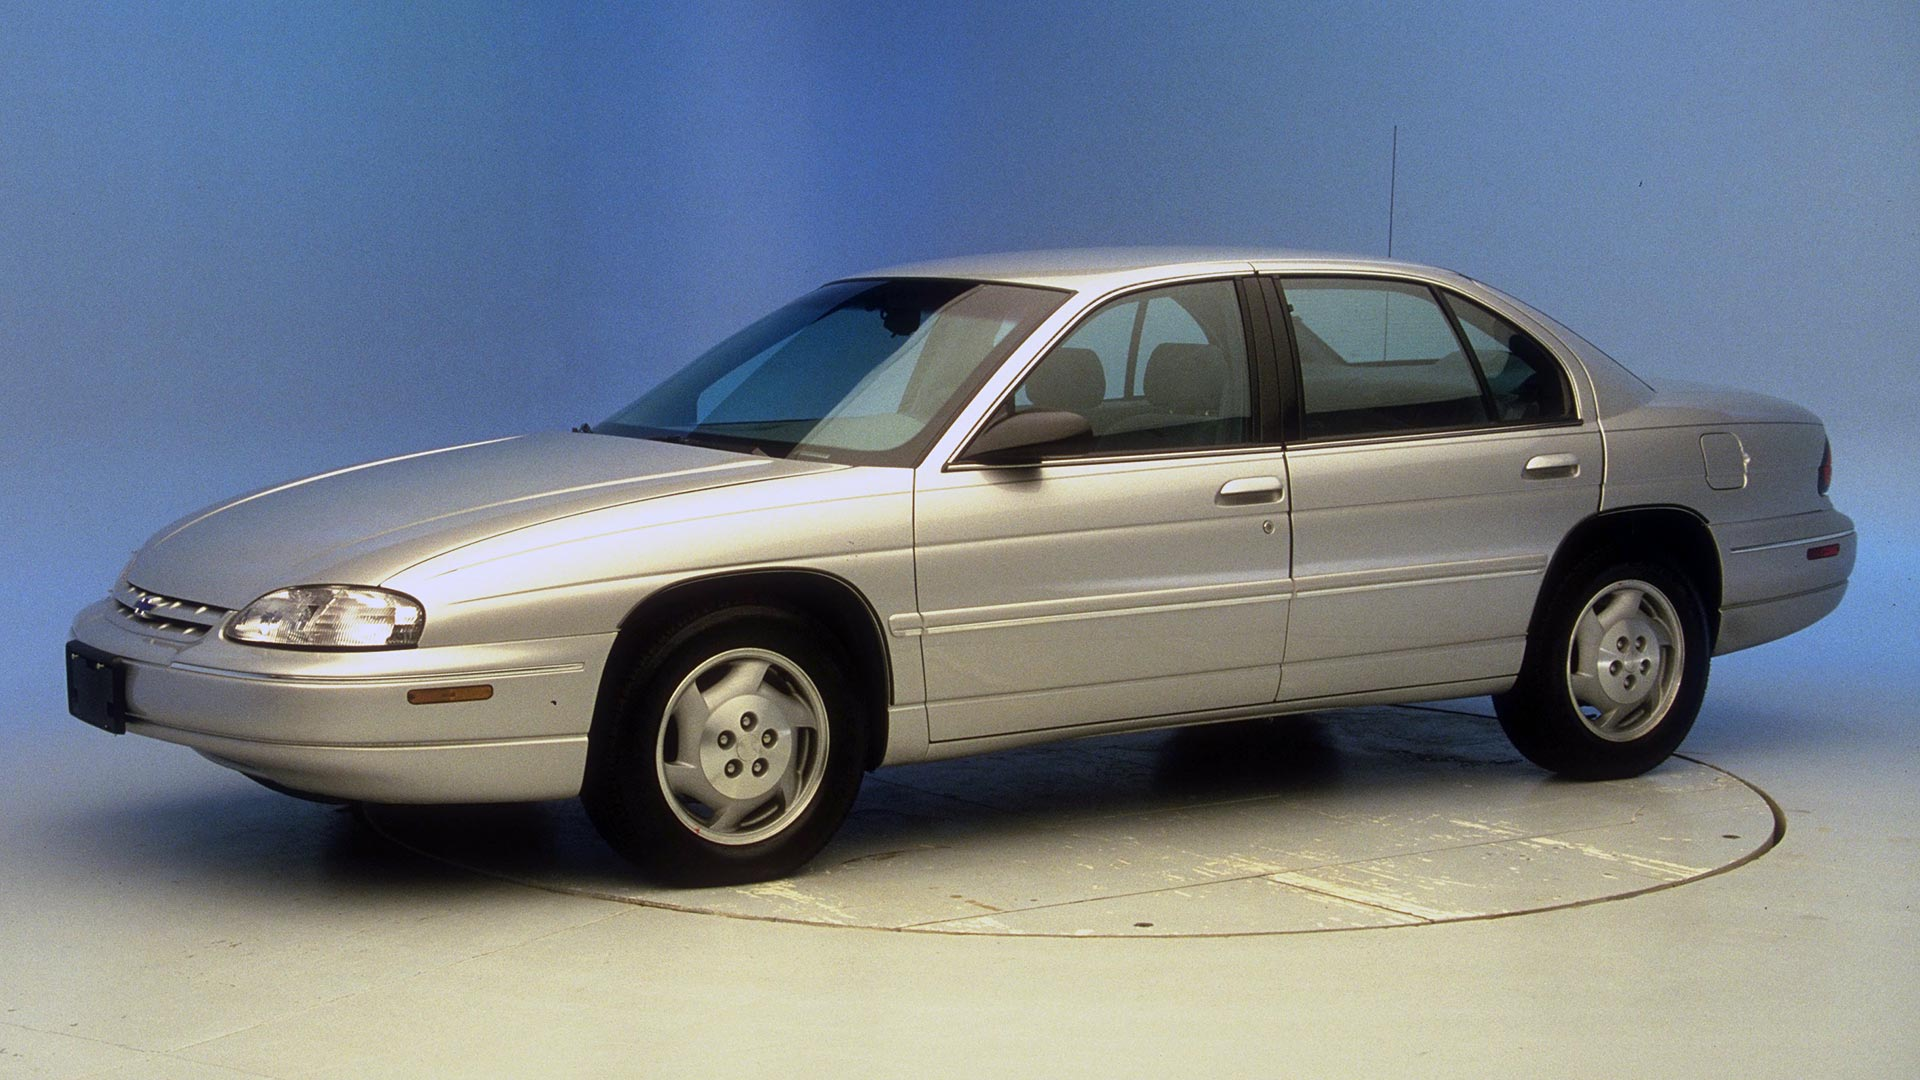 1999 Chevrolet Lumina 4-door sedan